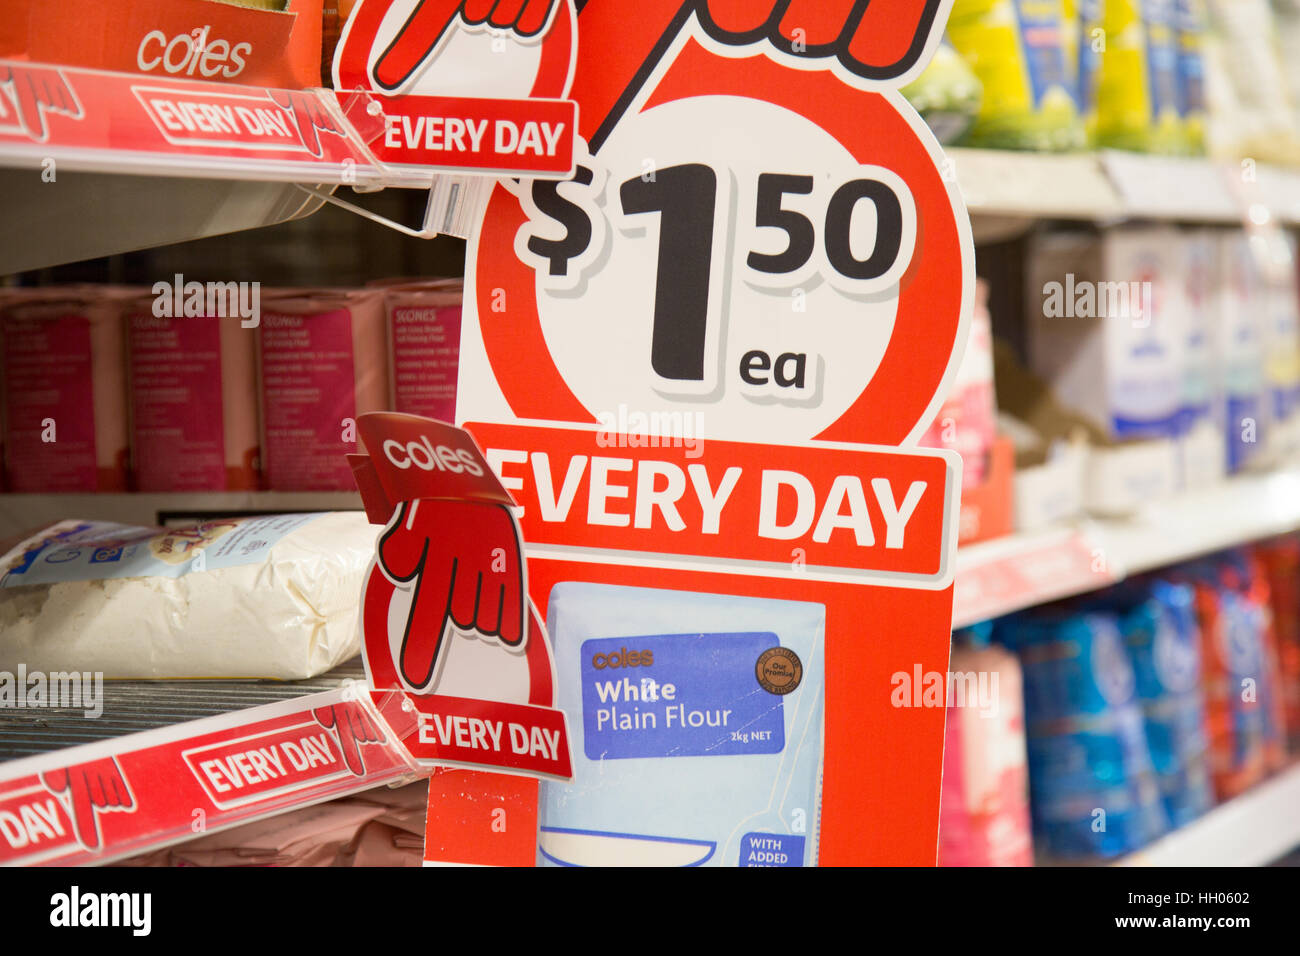 Coles Supermarket Store Sign In High Resolution Stock Photography And Images Alamy